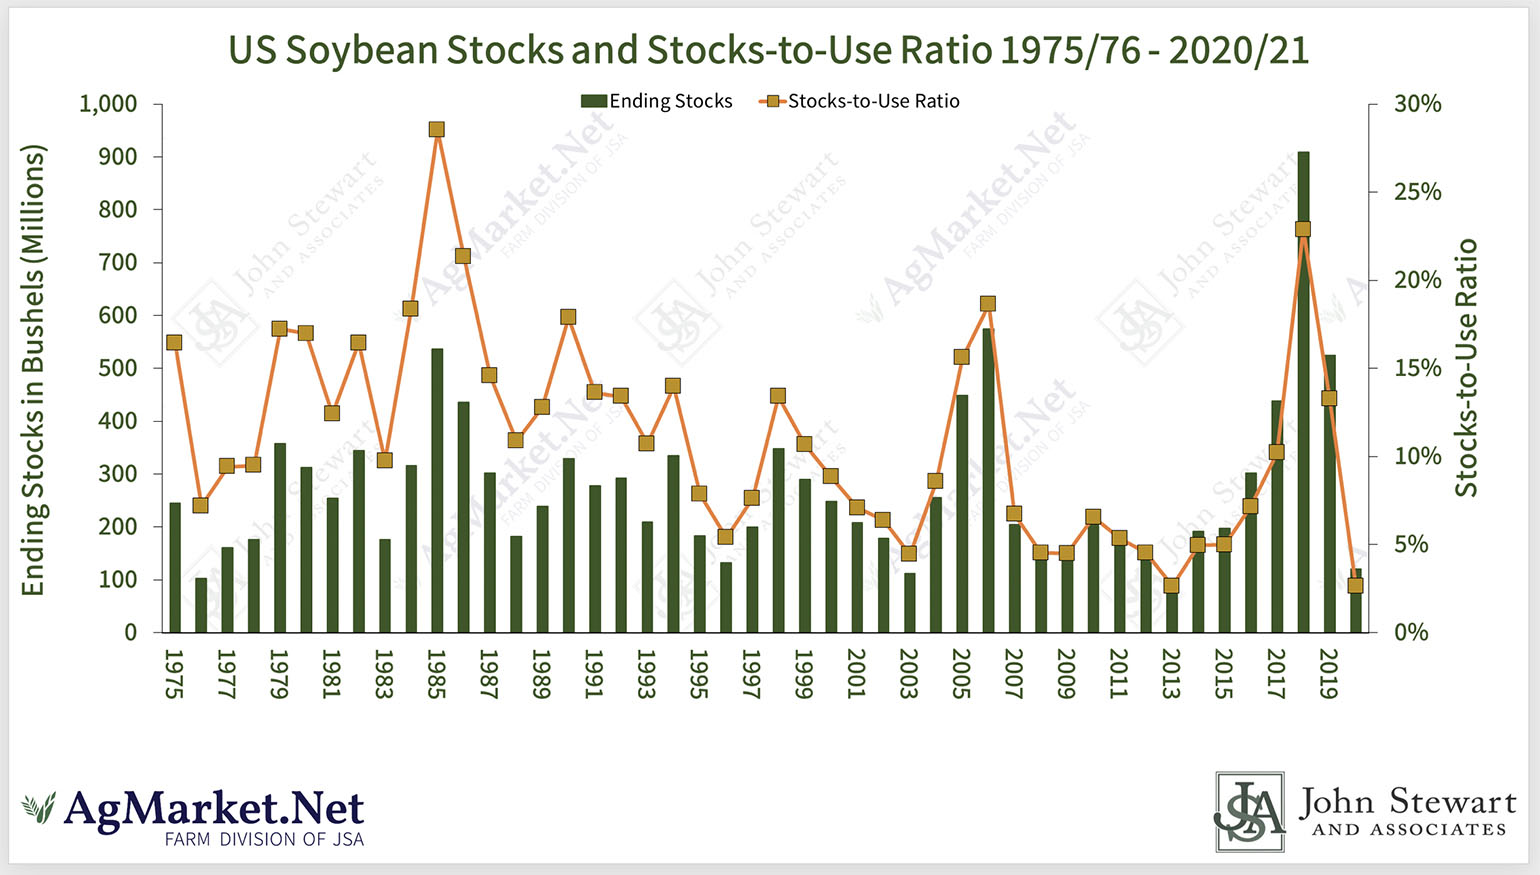 U.S. Soybean Stocks & Stocks To Use Ratio